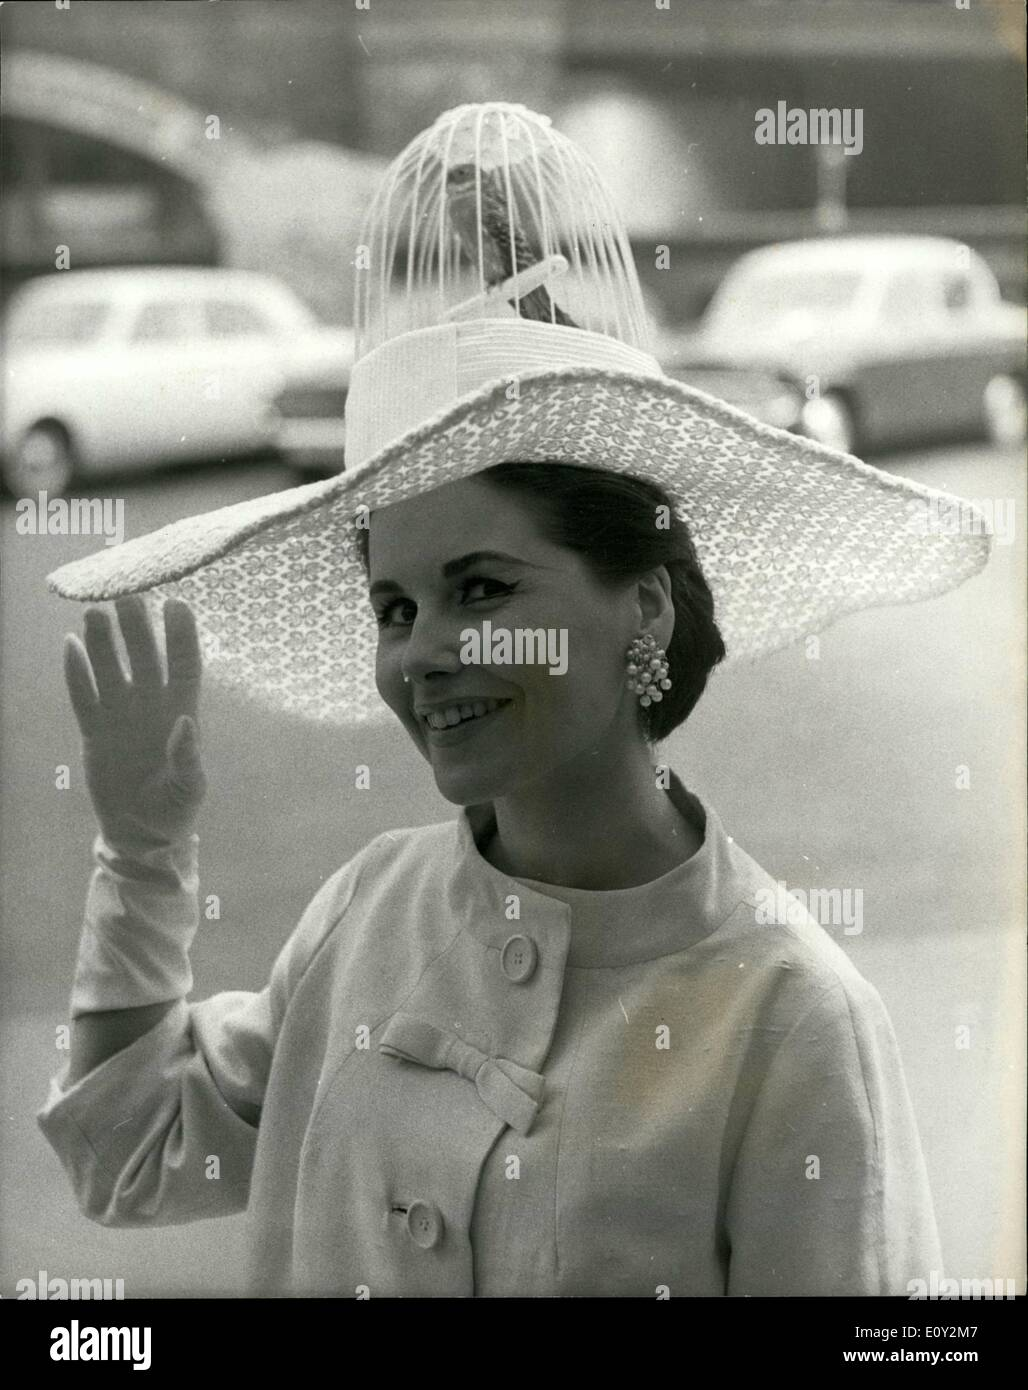 Jun. 06, 1968 - THE FIRST DAY OF THE ROYAL ASCOT MEETING HAT FASHIONS AT WATERLOO STATION - A 'BUDGIE. IN HER HAT PHOTO SHOWS: JANE BOUGH, 21, wore this white - lace hat with the crown as a bird-cage containing a real live Budgerigar when she left Waterloo for Ascot today. - Stock Image